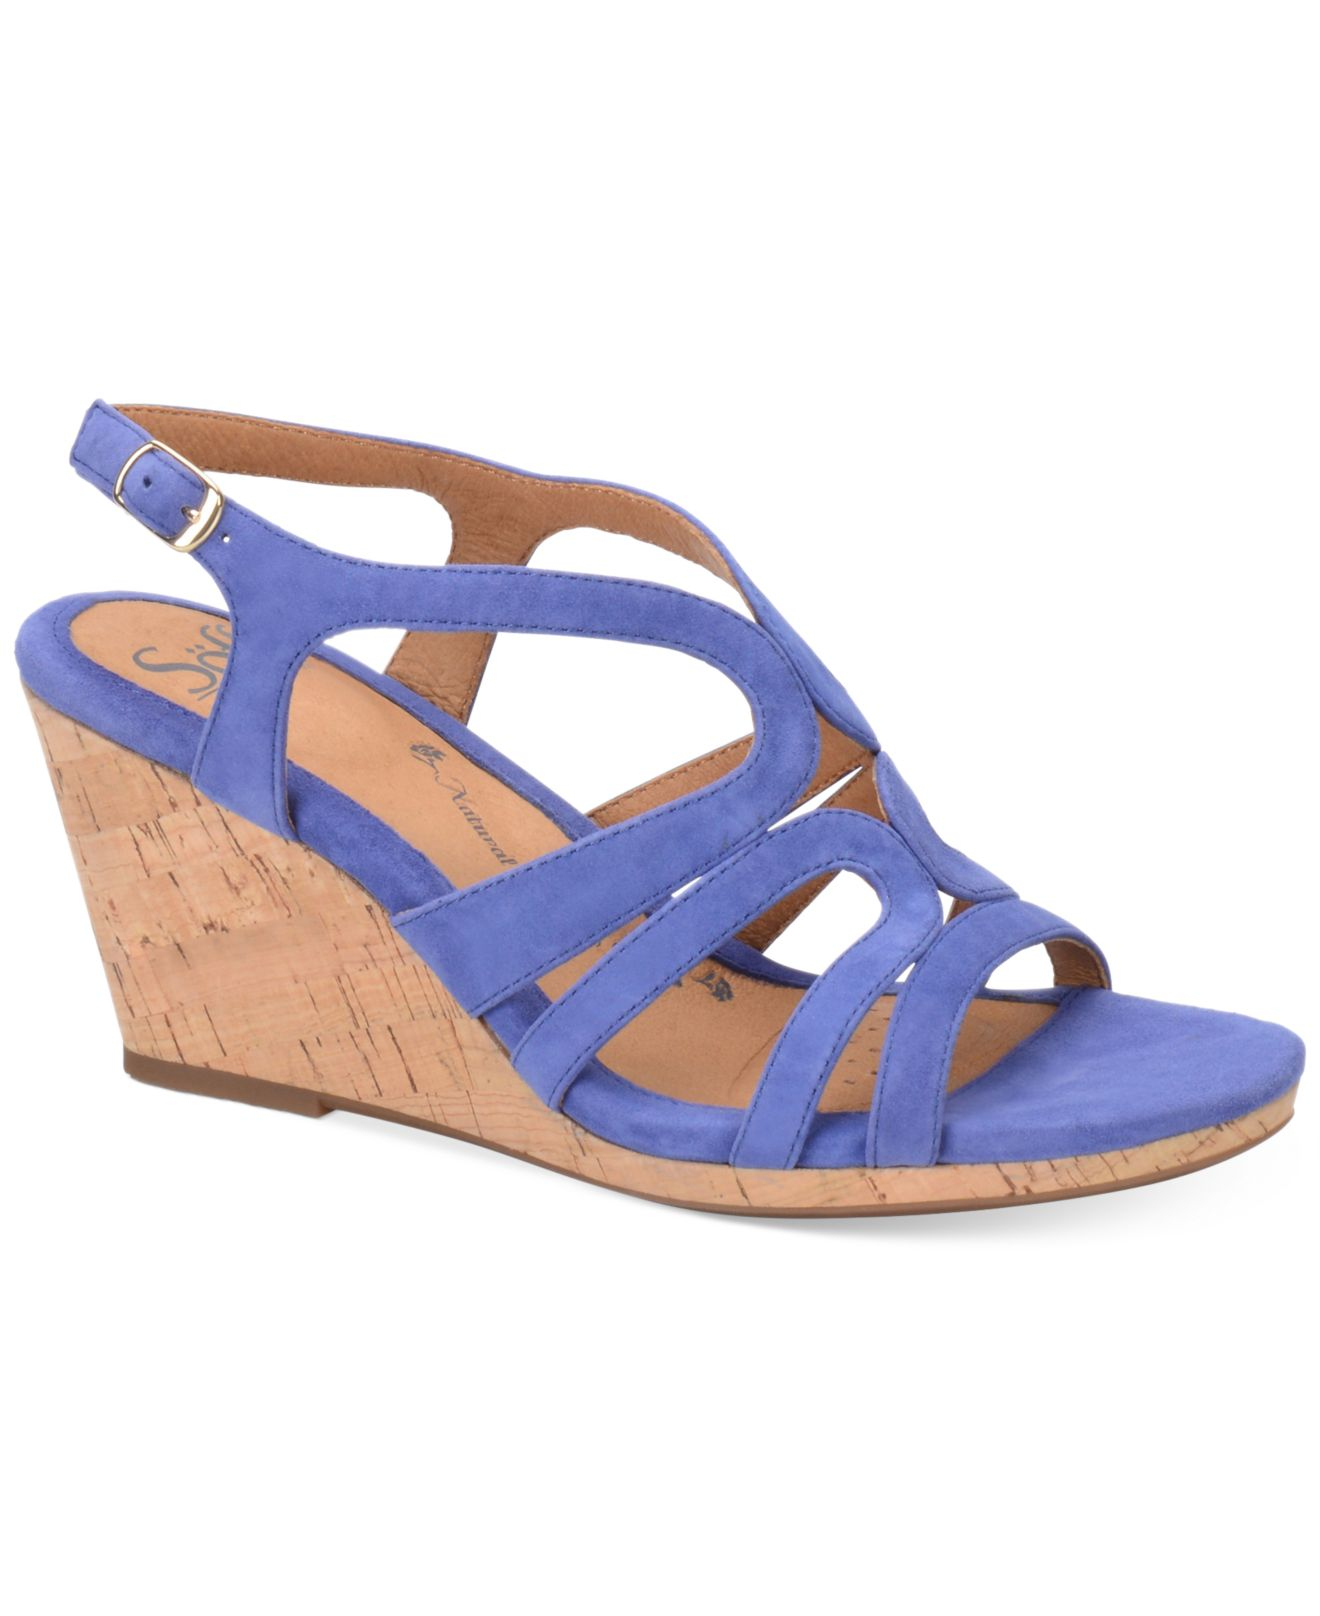 s 246 fft corinth platform wedge sandals in blue lyst